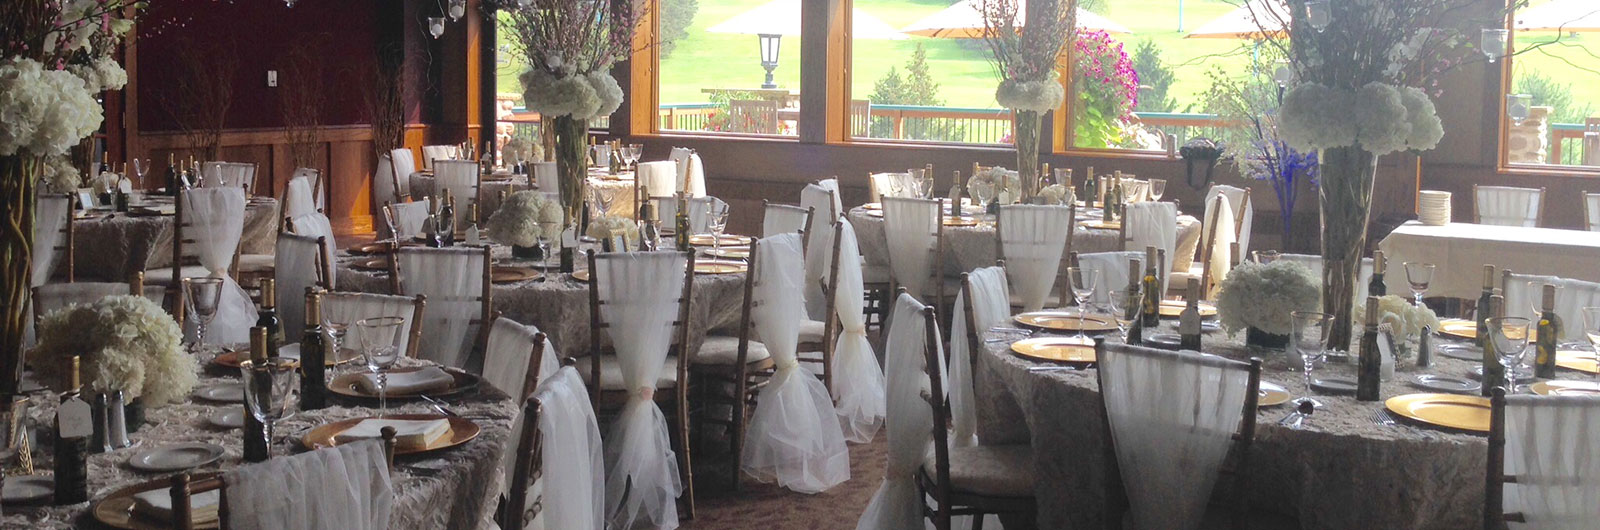 Holiday Valley Wedding Venues Ellicottville Western New York